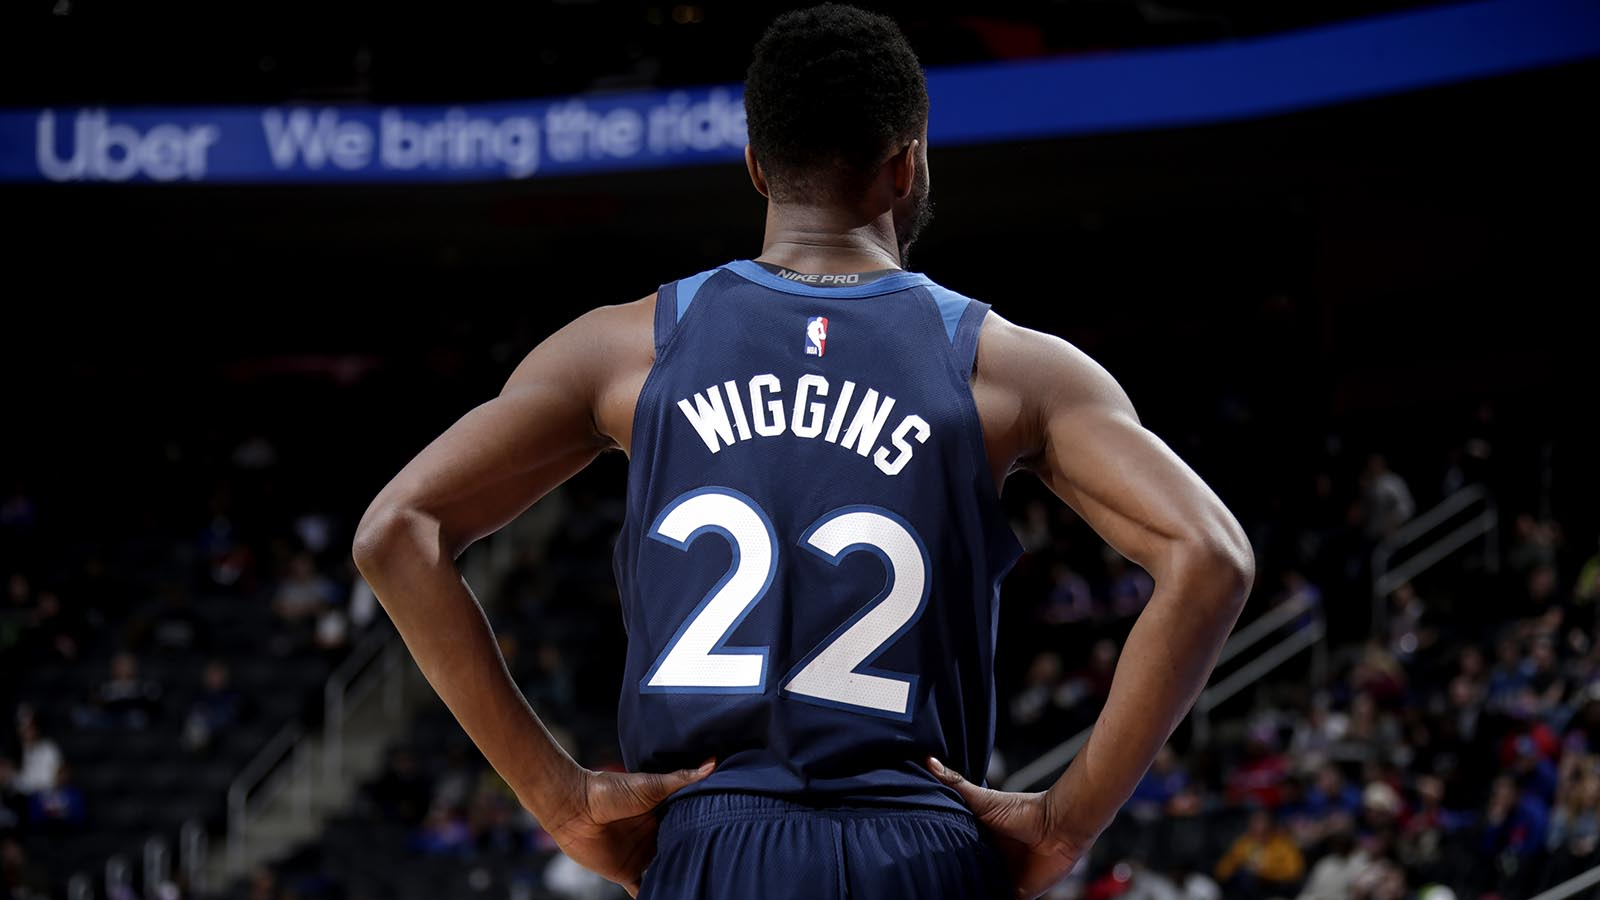 StaTuesday: The resurgence of Wolves forward Andrew Wiggins